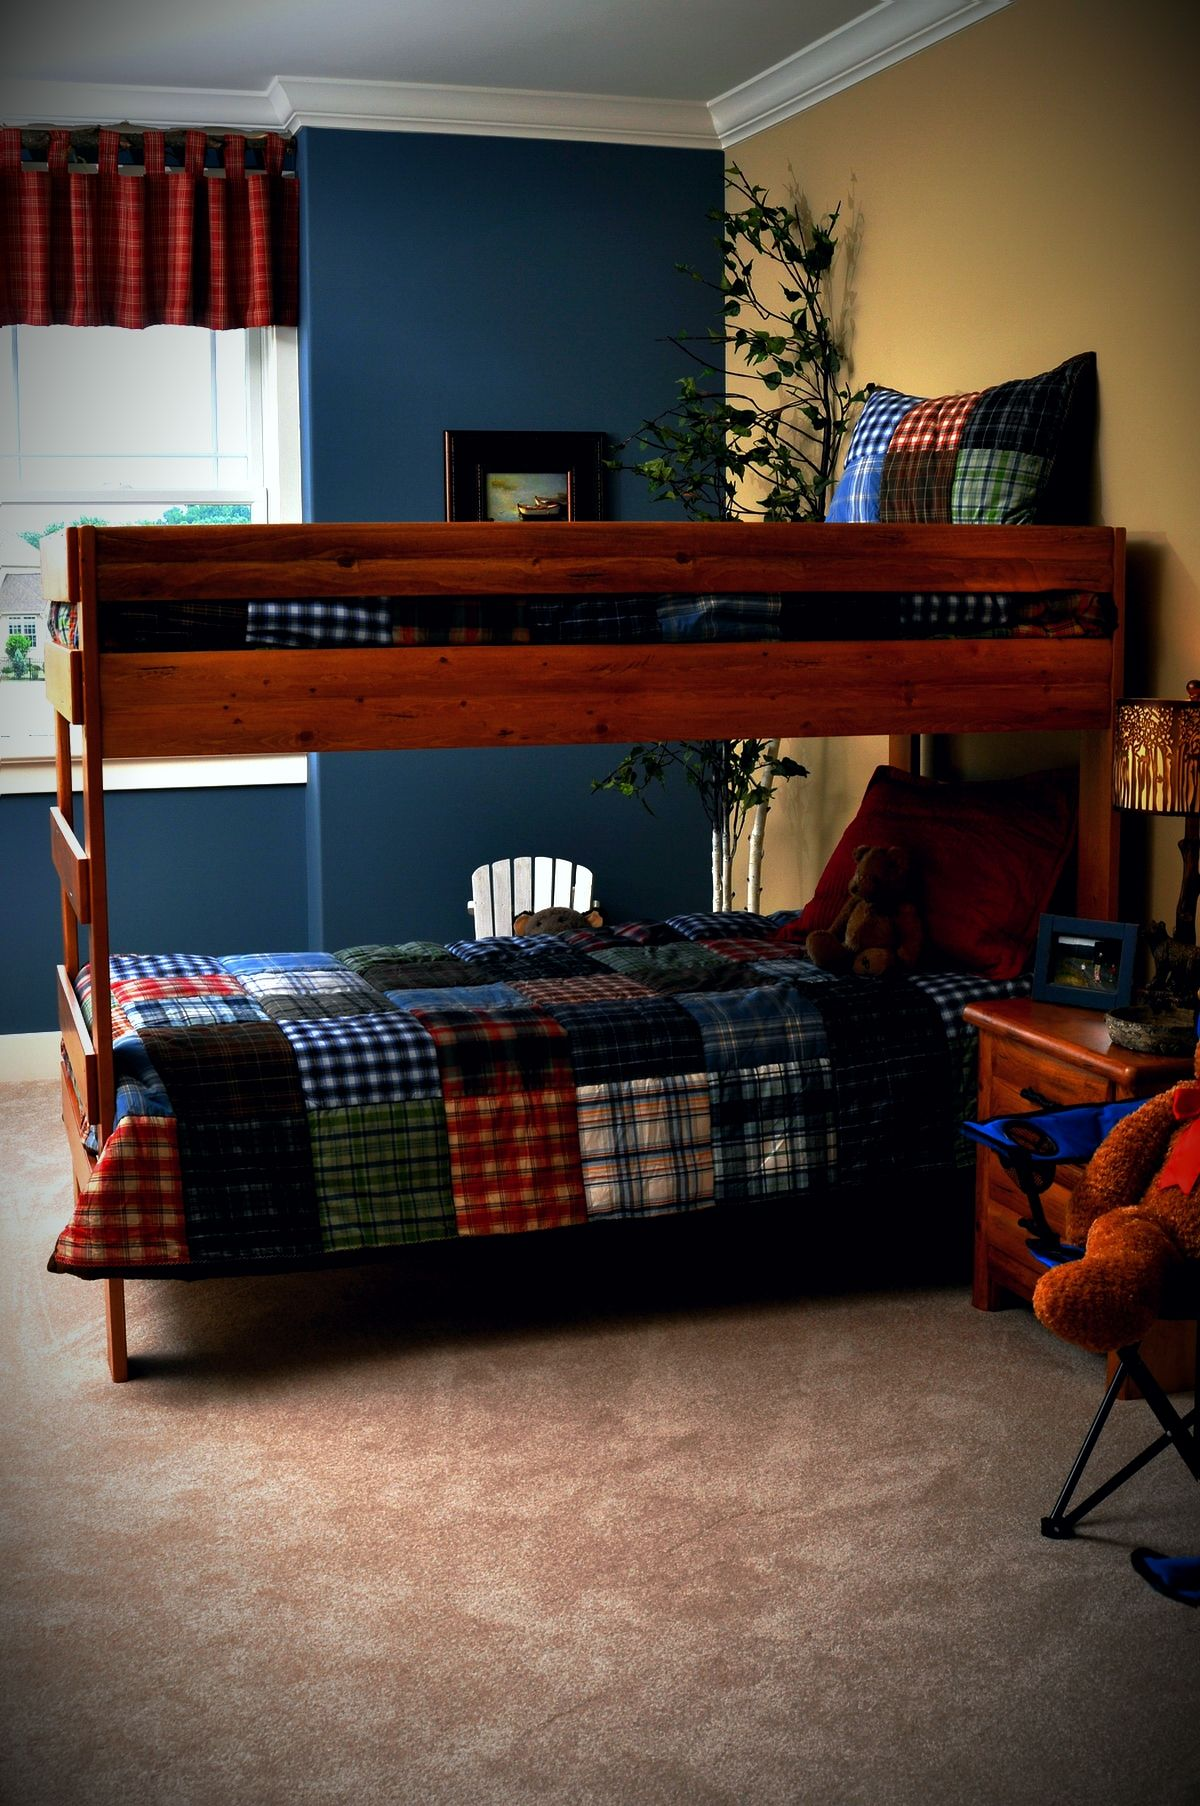 Two Different Colored Walls With Another Color Valance.Boys Bedroom    Outdoor/Camping Theme With Blue/tan Walls, Bunkbeds, Patchwork Quilt.